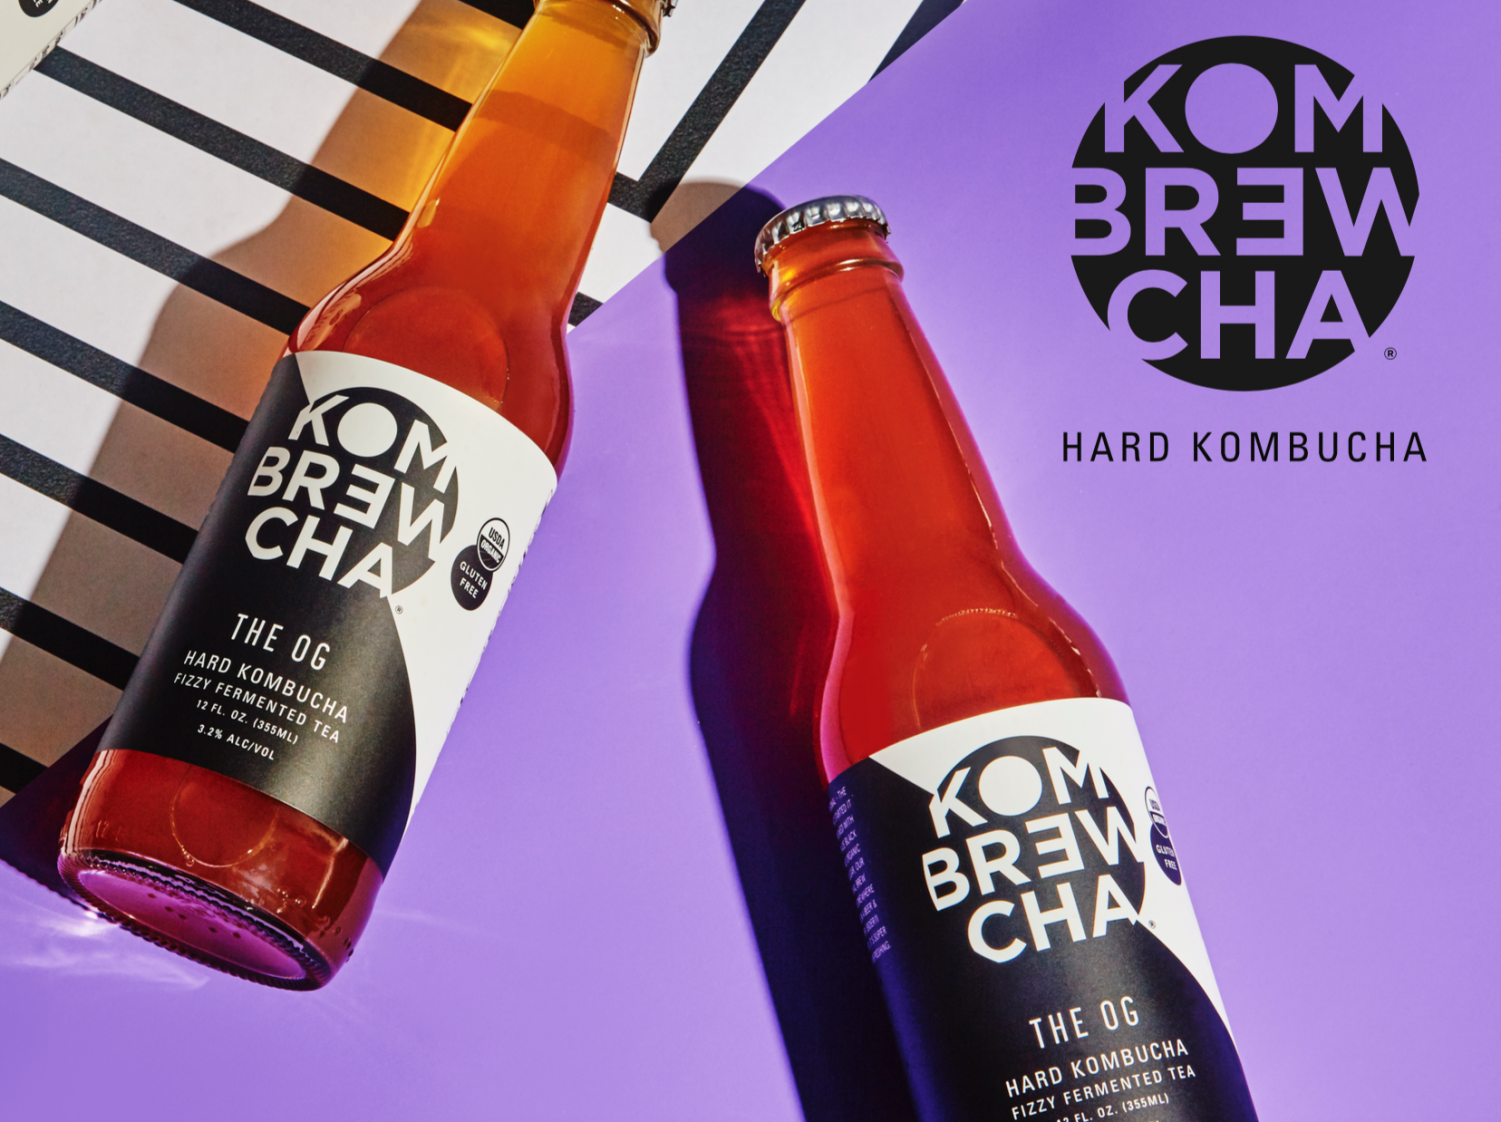 Kombrewcha is the first hard kombucha to launch in the United States.